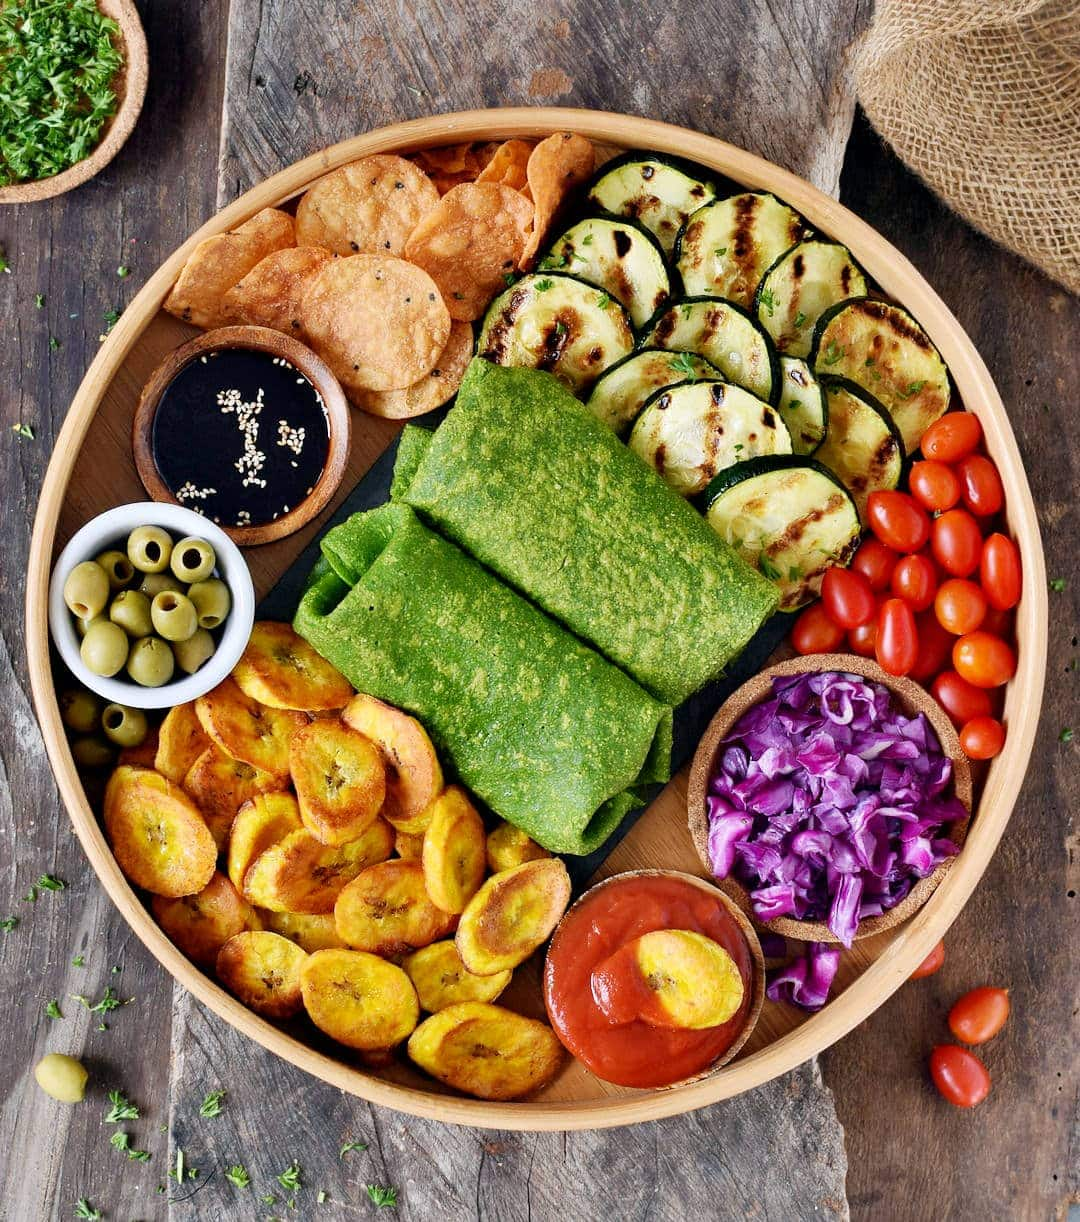 plantain chips with spinach wraps and veggies on a platter